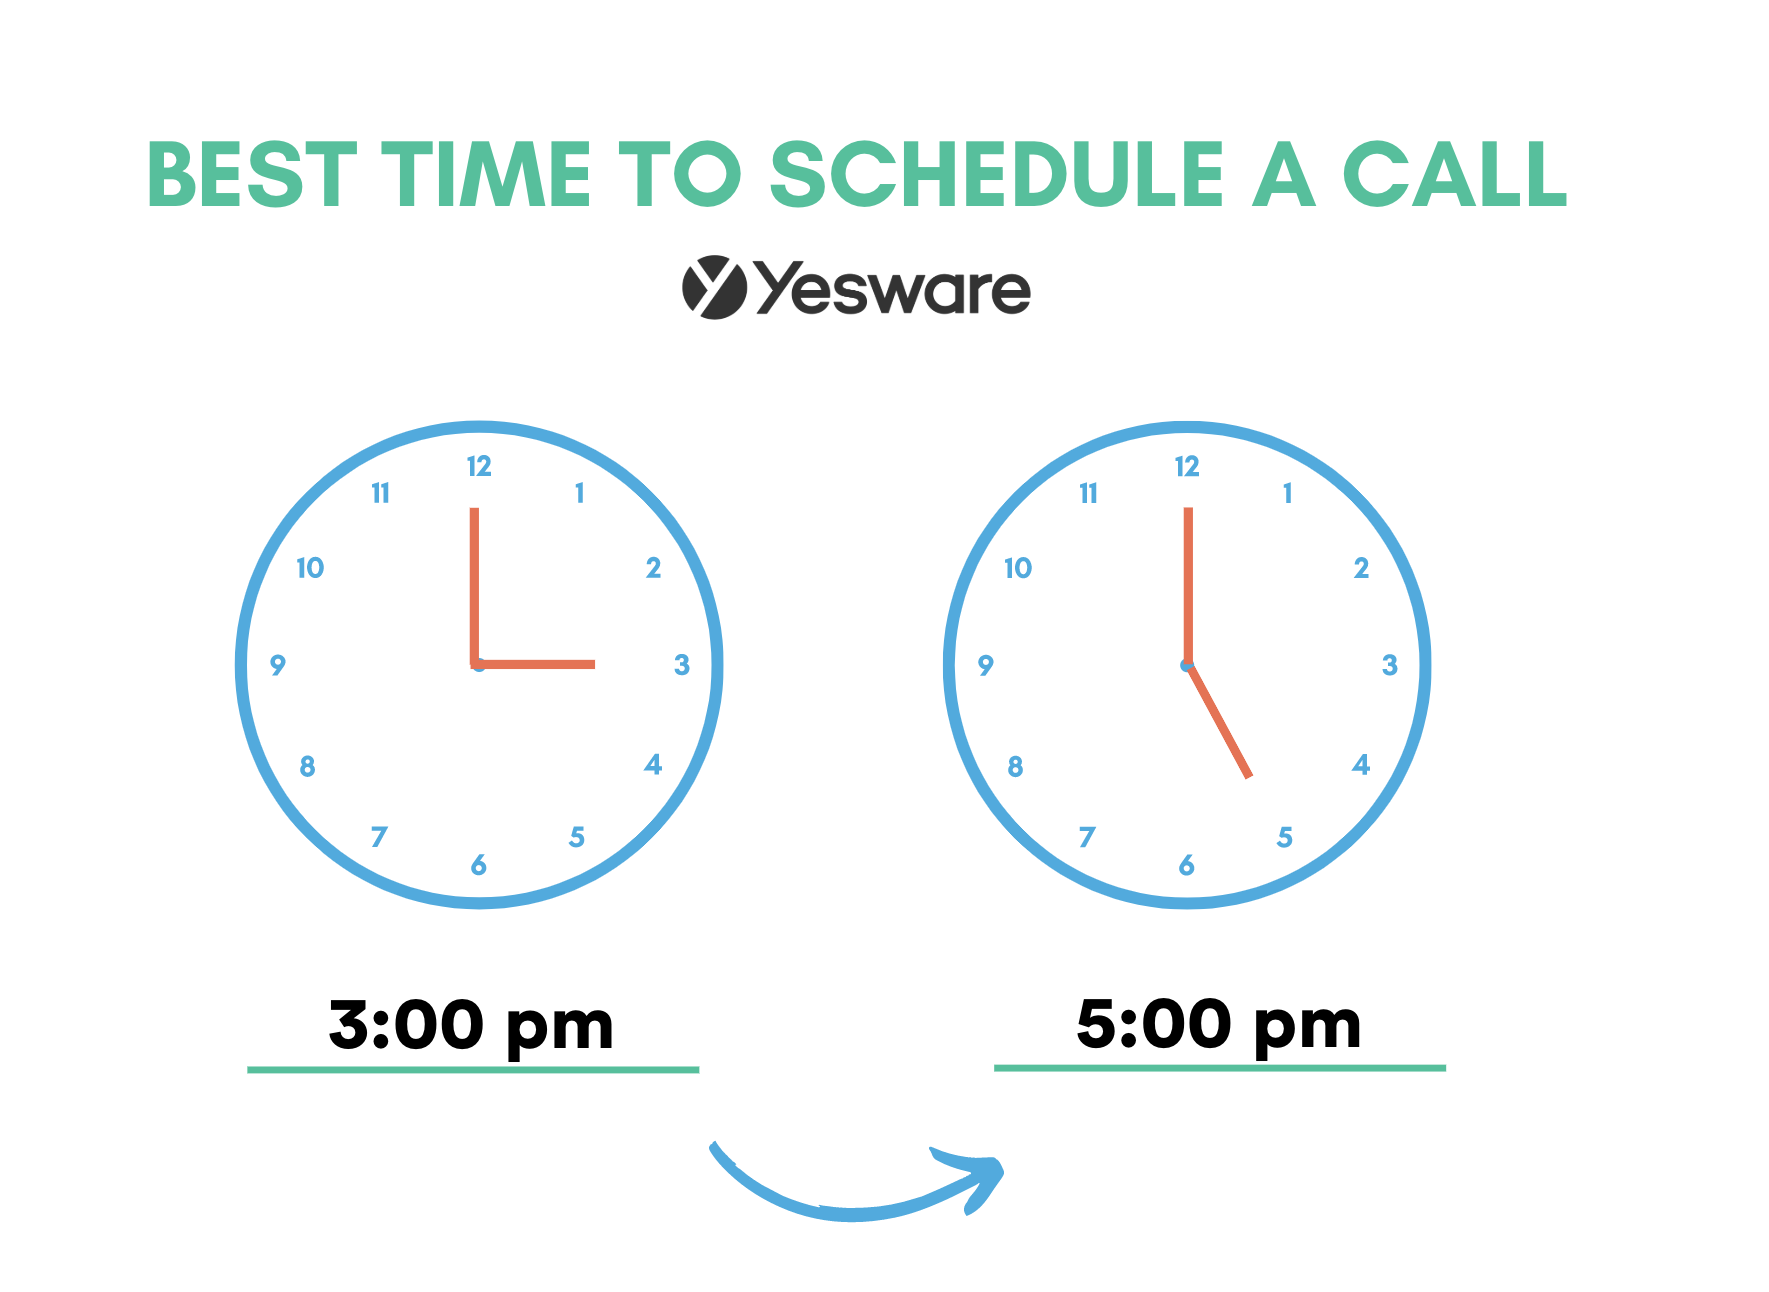 Avoid the dreaded no-show and get prospects to show up: best time to schedule a call.